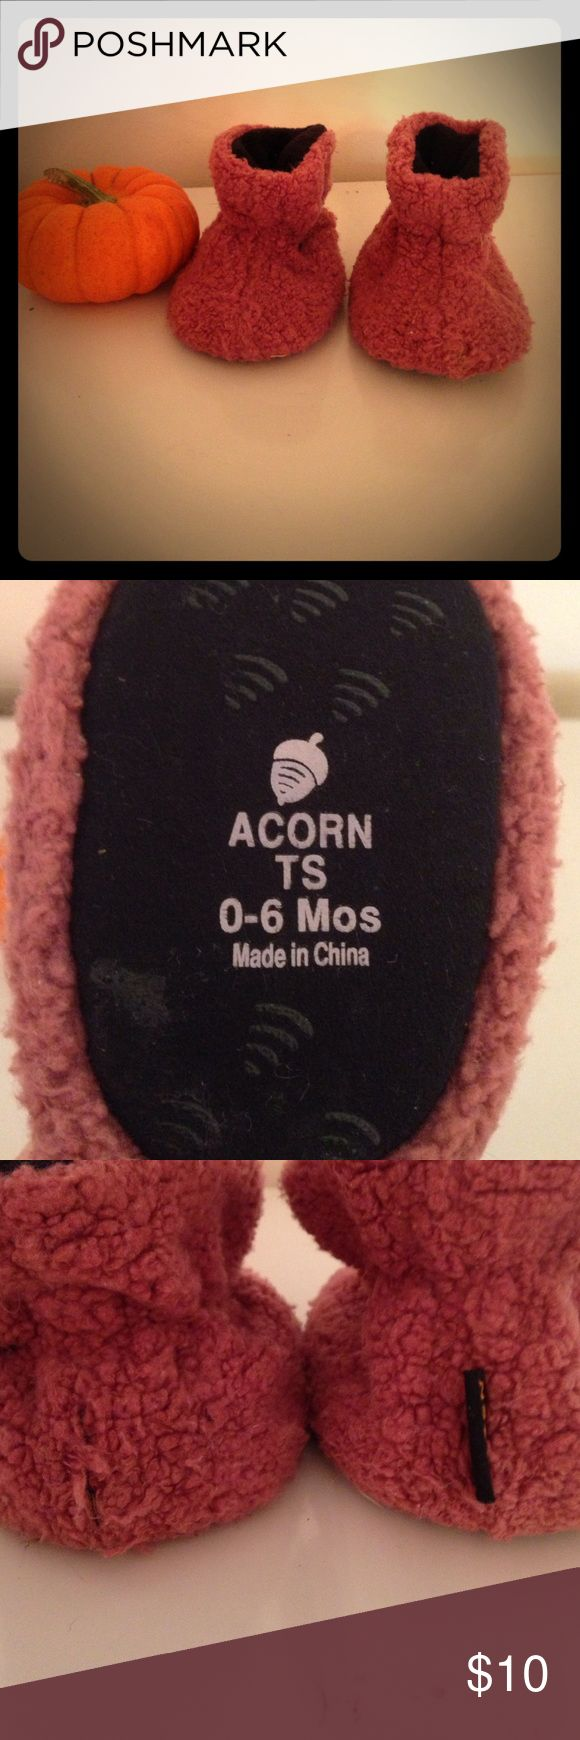 Acorn bootie slippers, girls 0-6 months! Good used condition Acorn bootie slippers, girls size 0-6 months. Cozy, warm, and perfect for little feet! *Label tag missing from one. Acorn Shoes Slippers